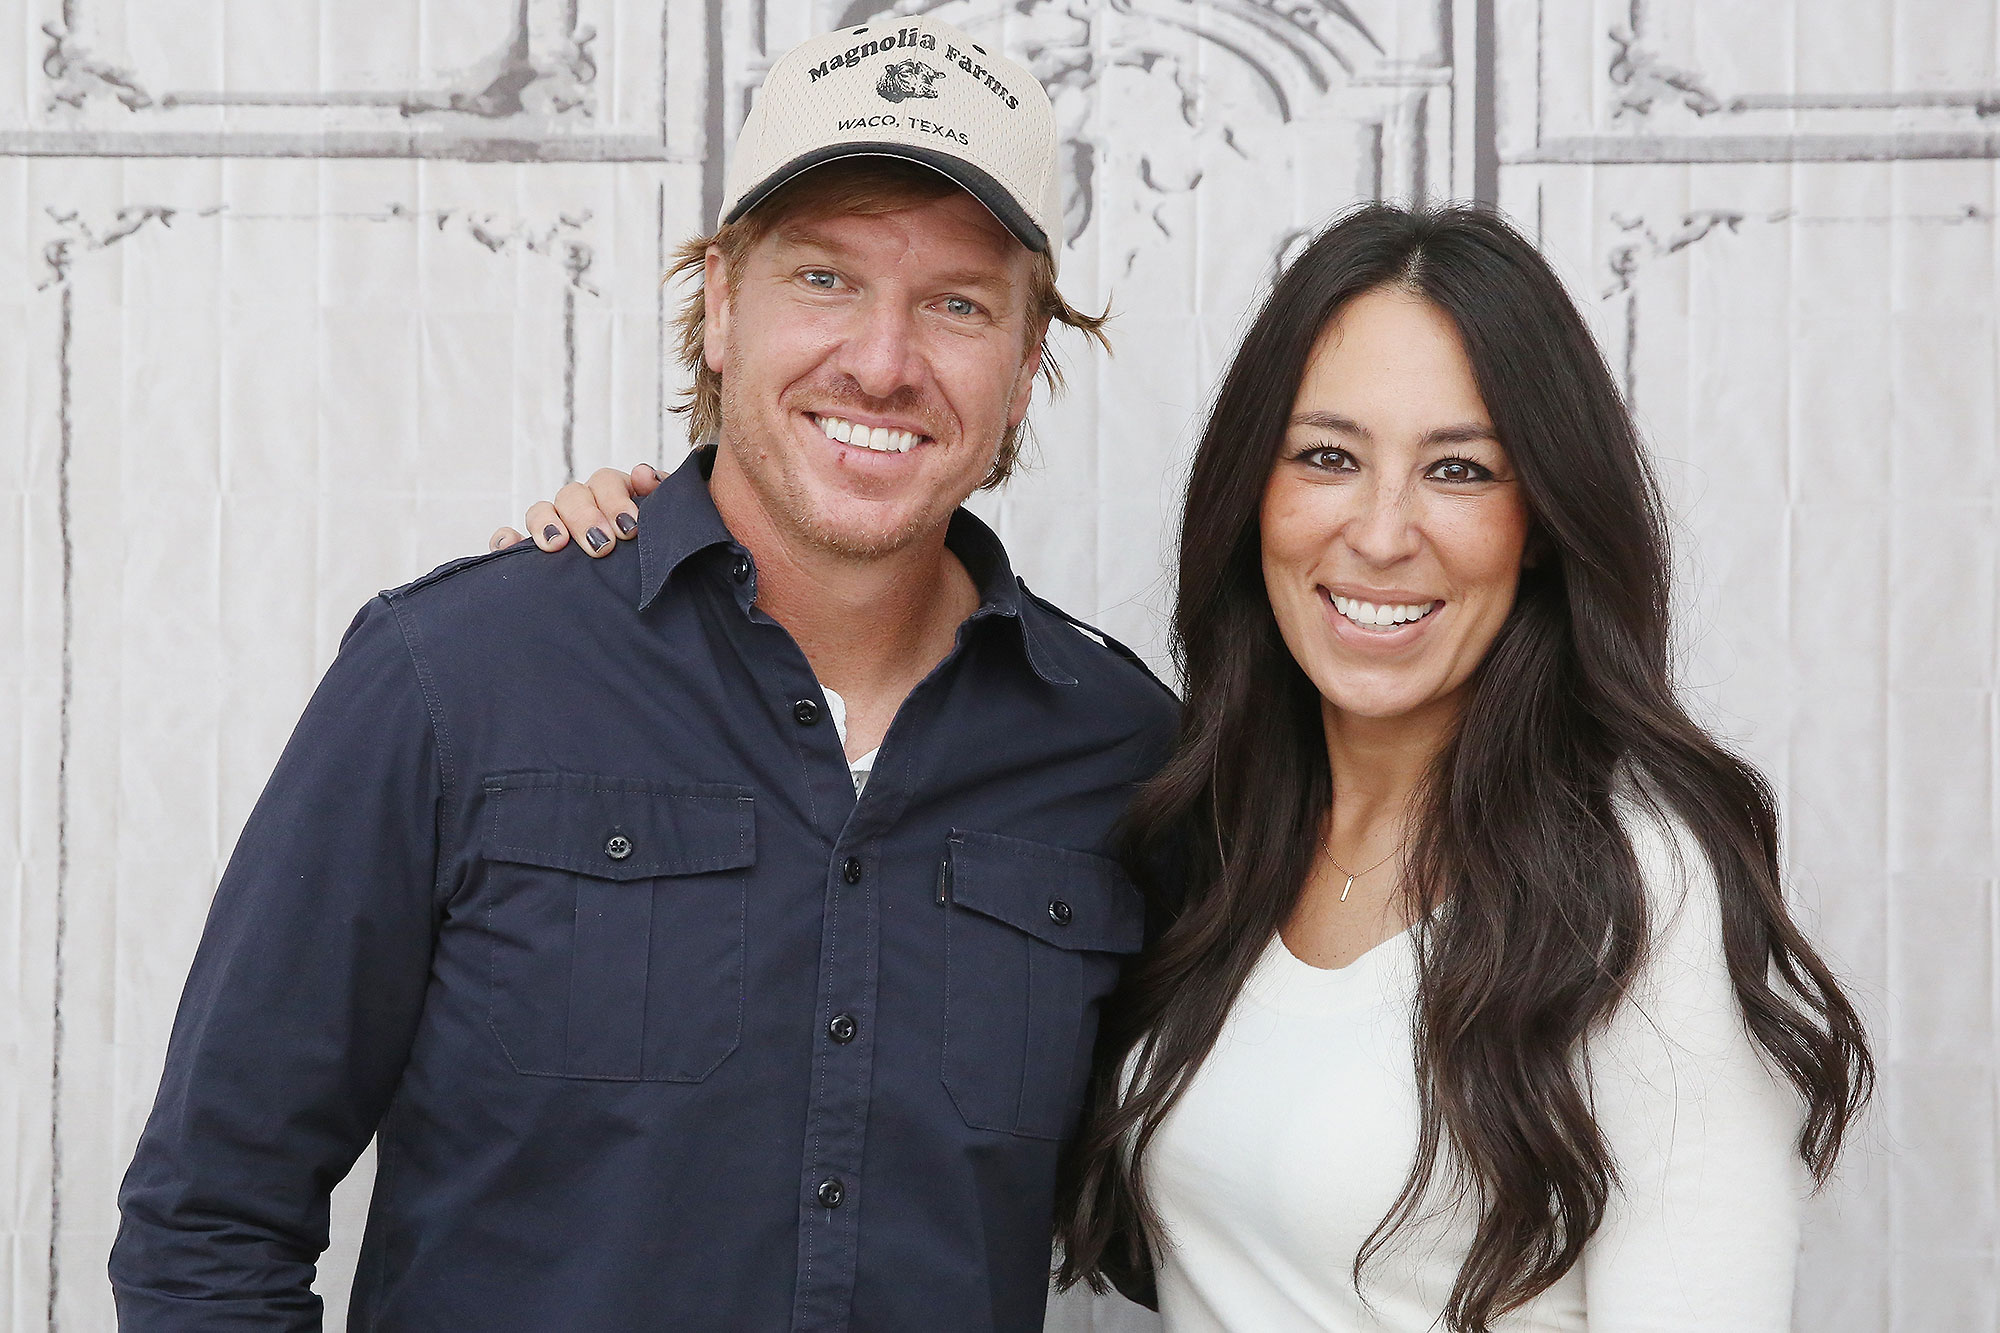 Fixer Upper Star Chip Gaines Warns: Don't Make This Mistake When Buying a Home